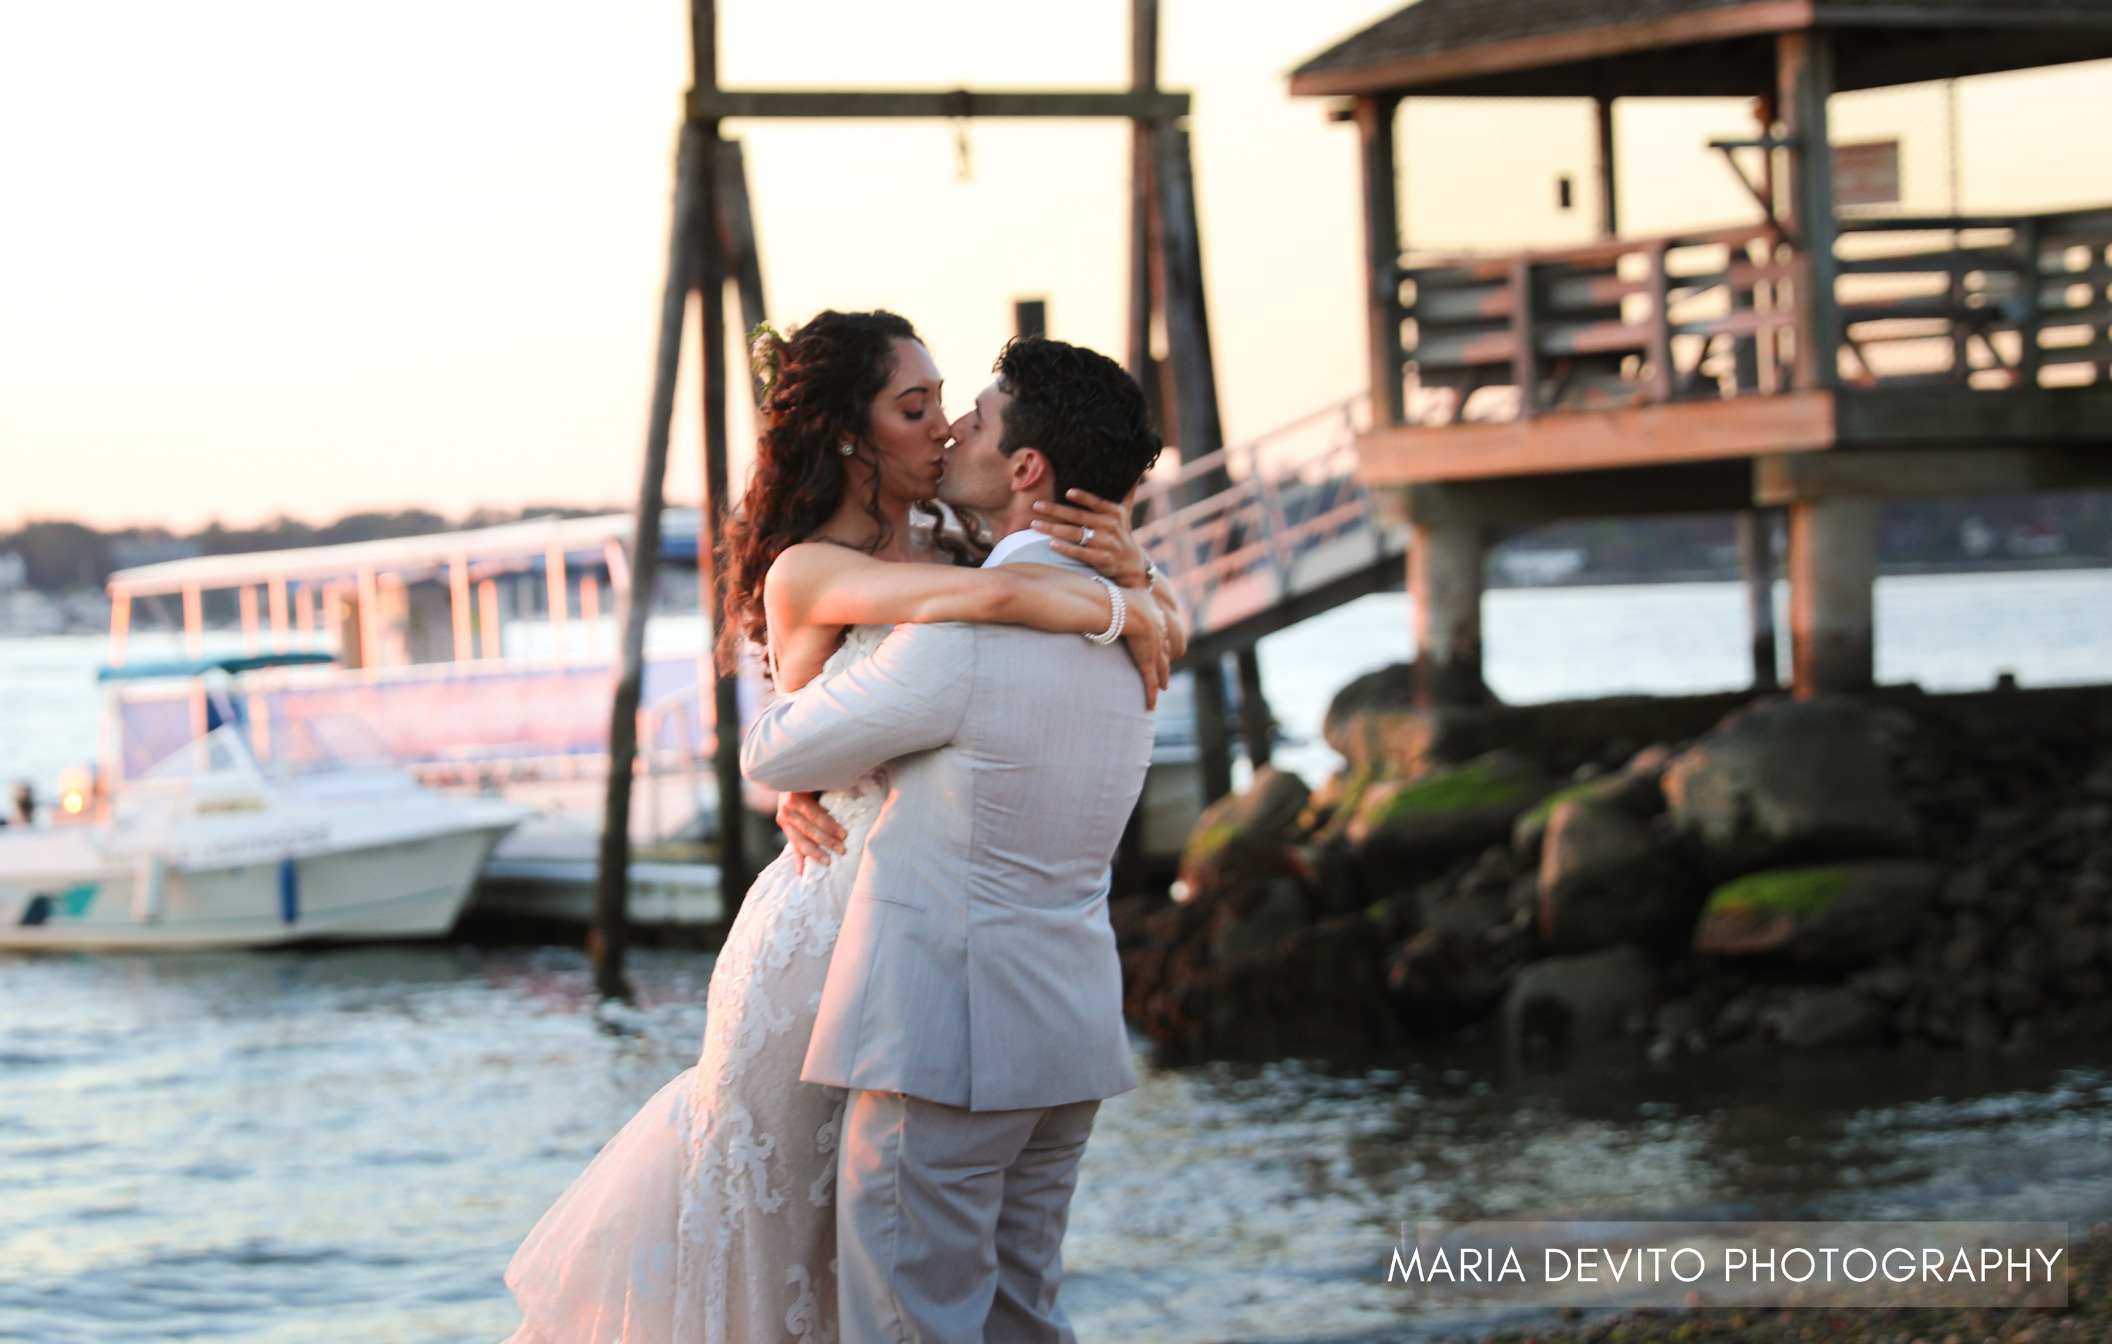 Groom holding up bride while they kiss in front of ocean backdrop with docked boat during wedding.